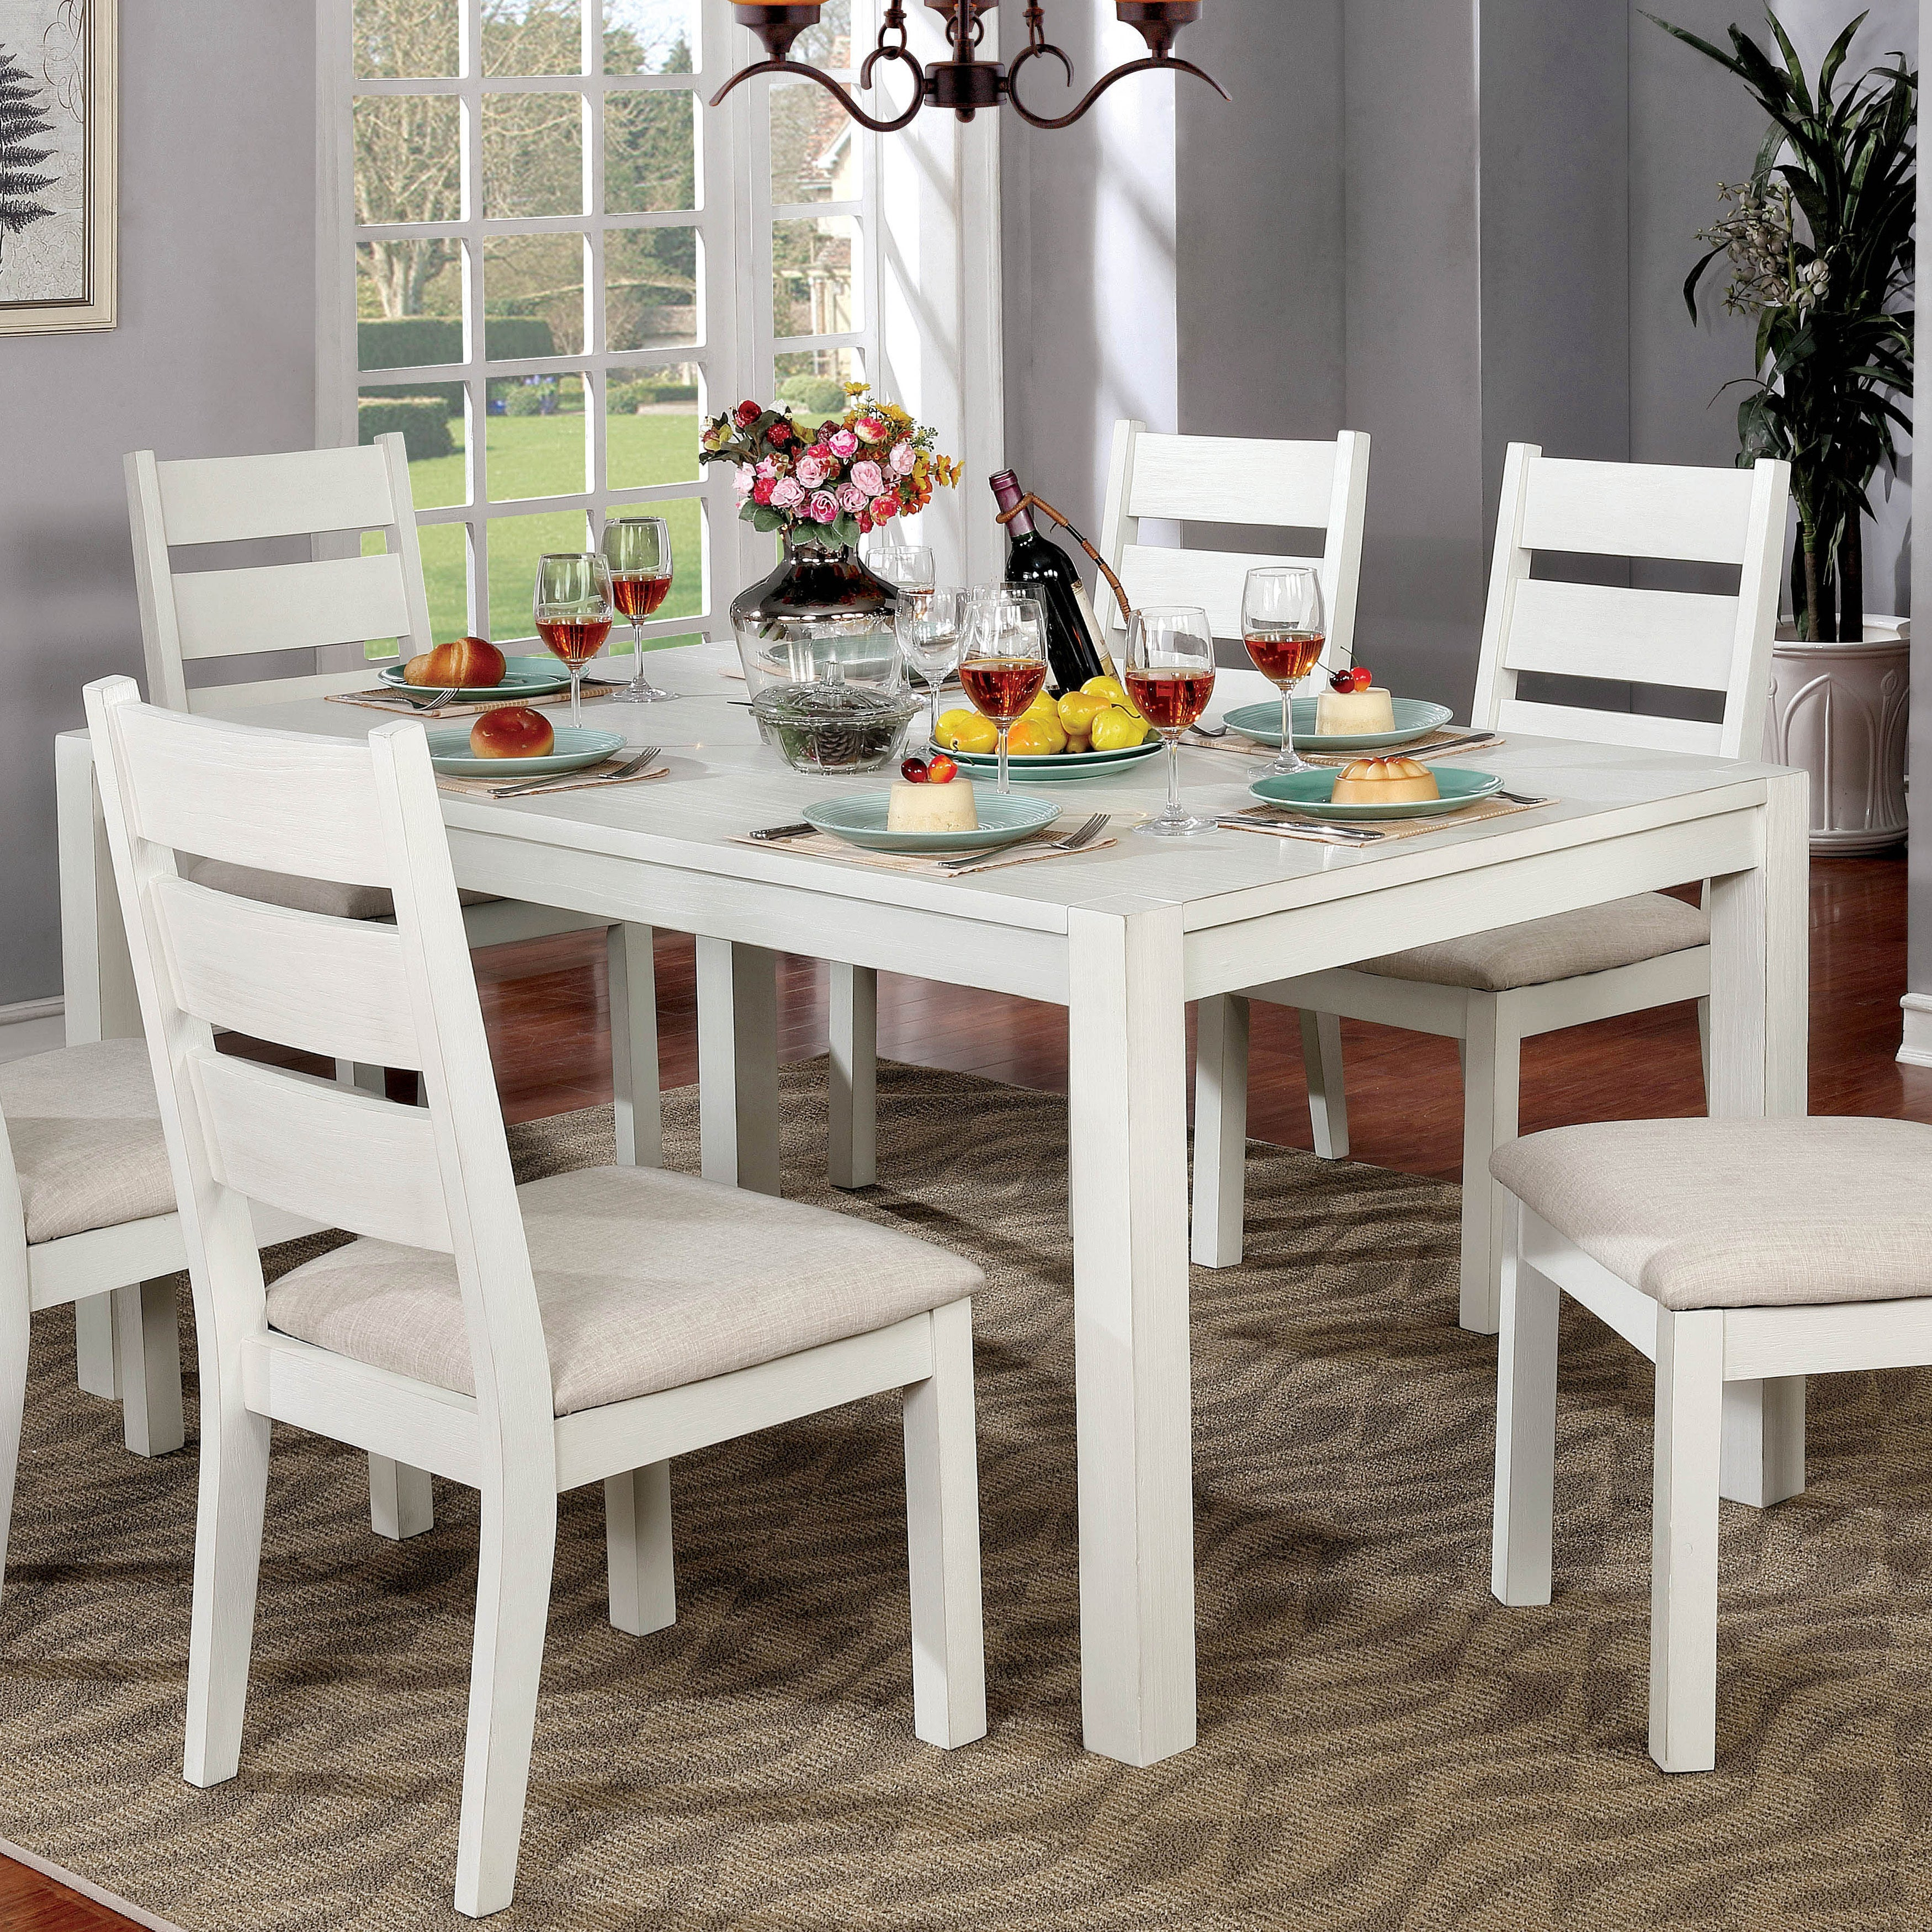 Furniture Of America Ferc Rustic White 64 Inch Solid Wood Dining Table Off